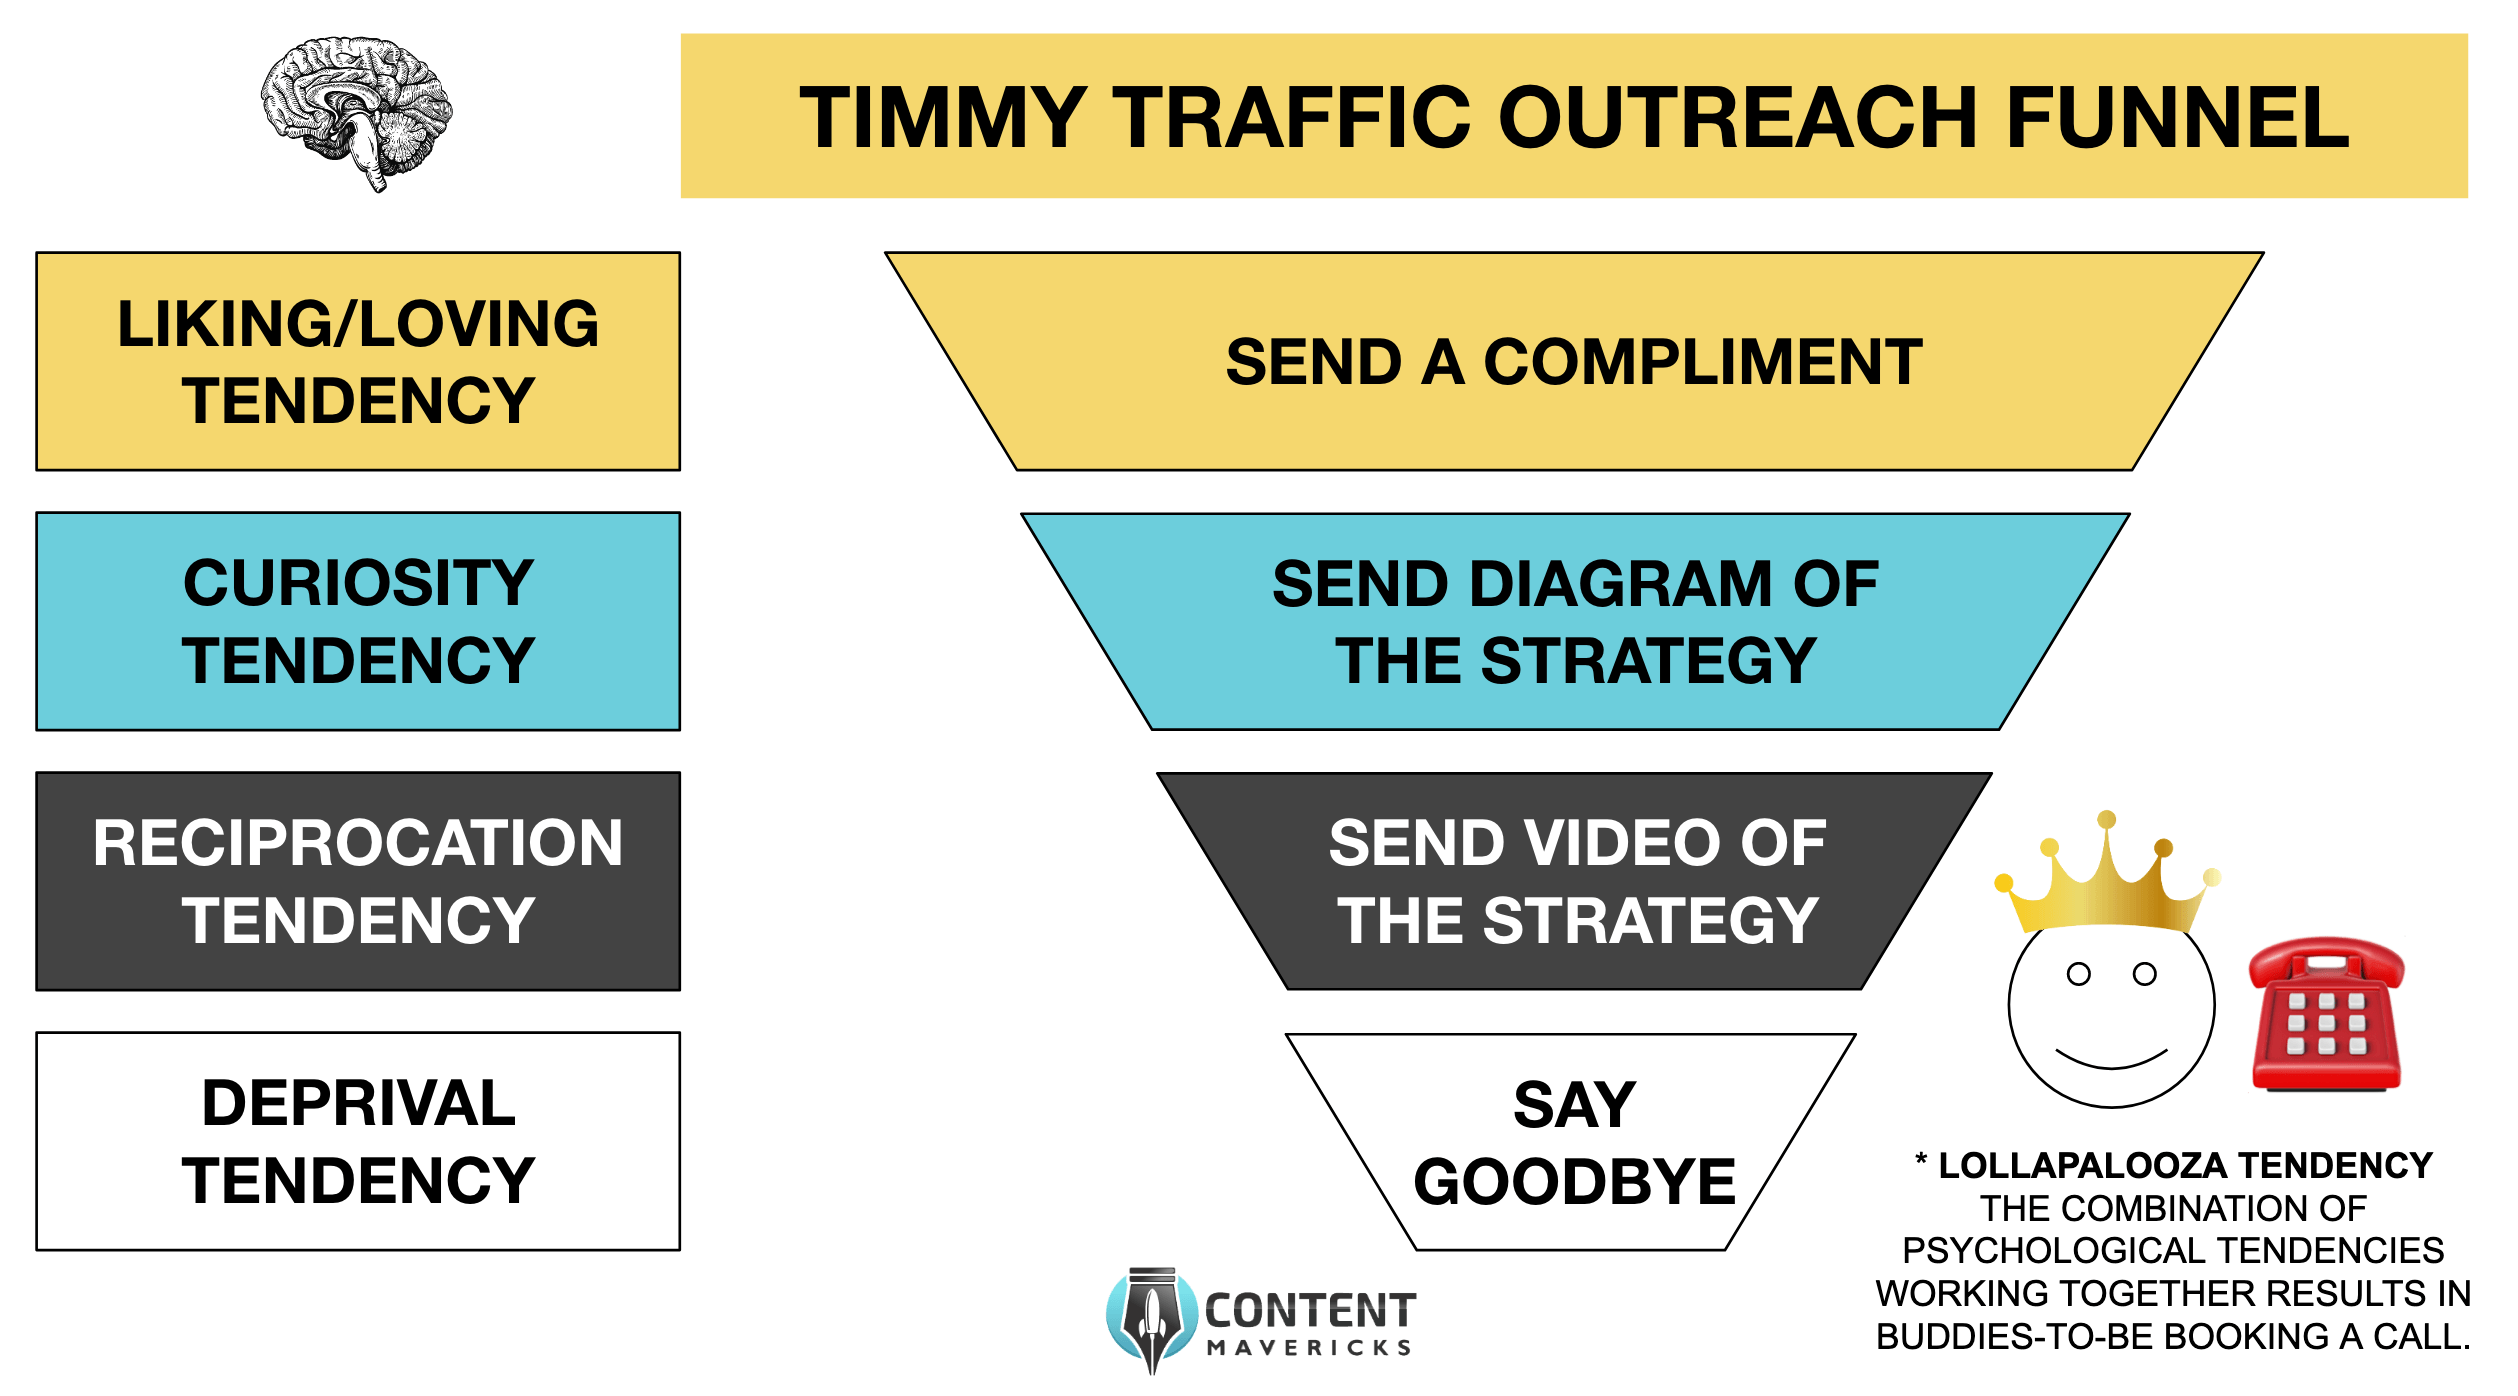 cold outreach funnel image